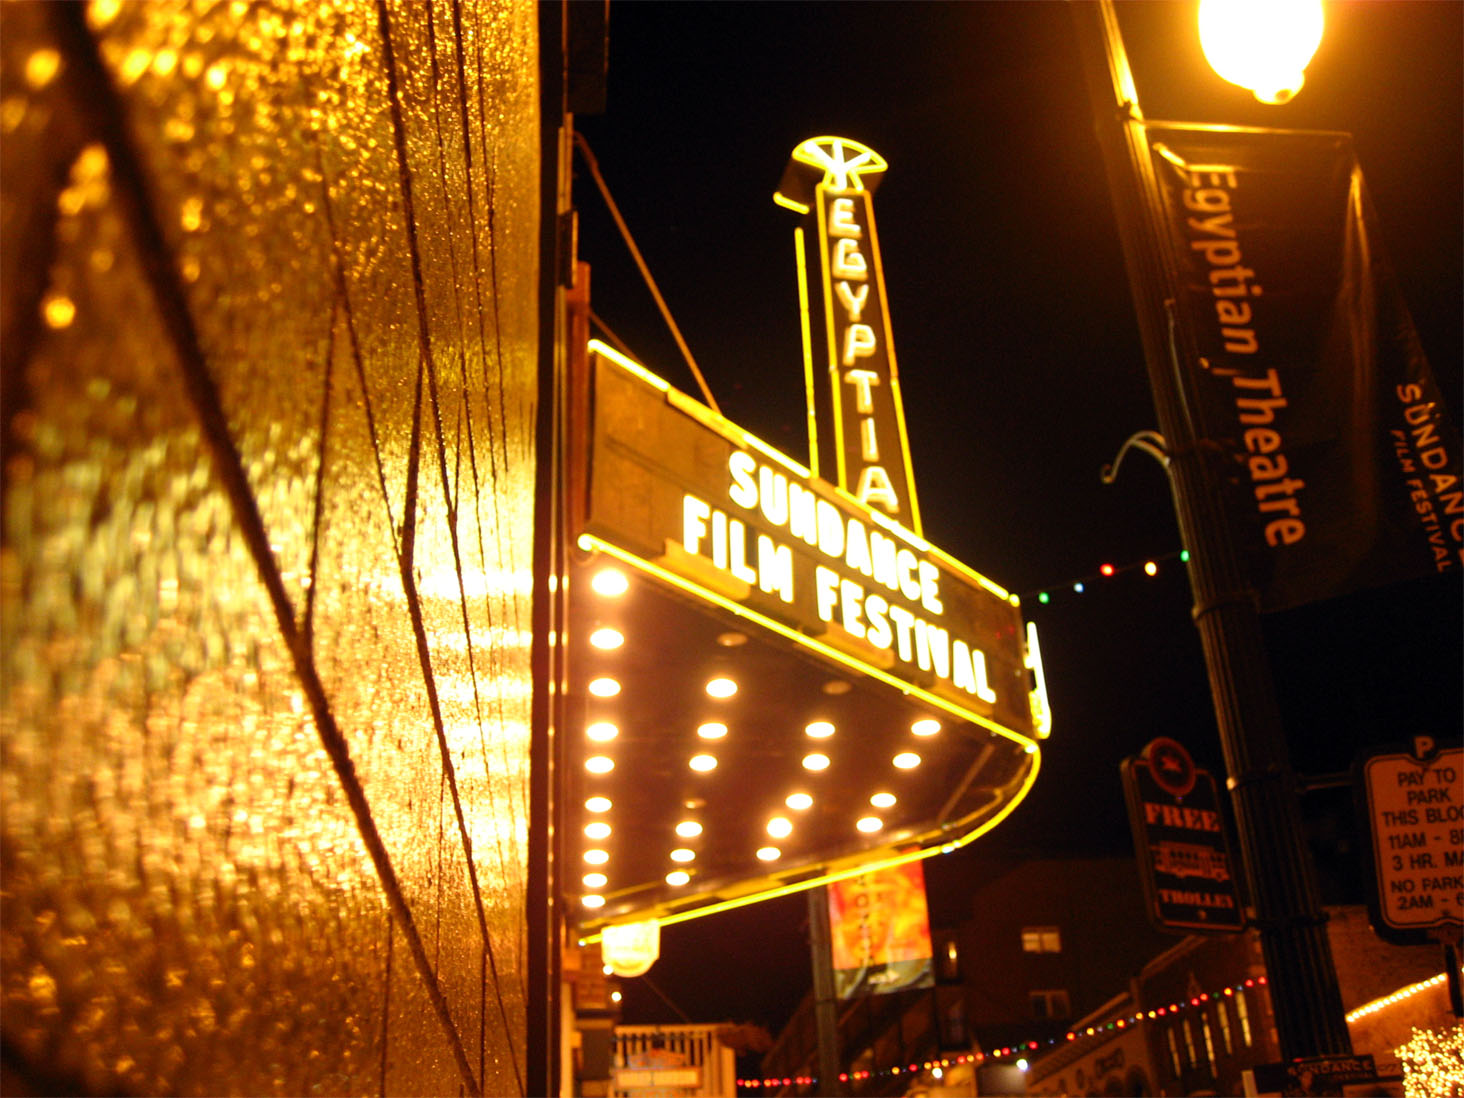 The iconic movie theater that plays host to Sundance, featuring award-winning movies and short films.